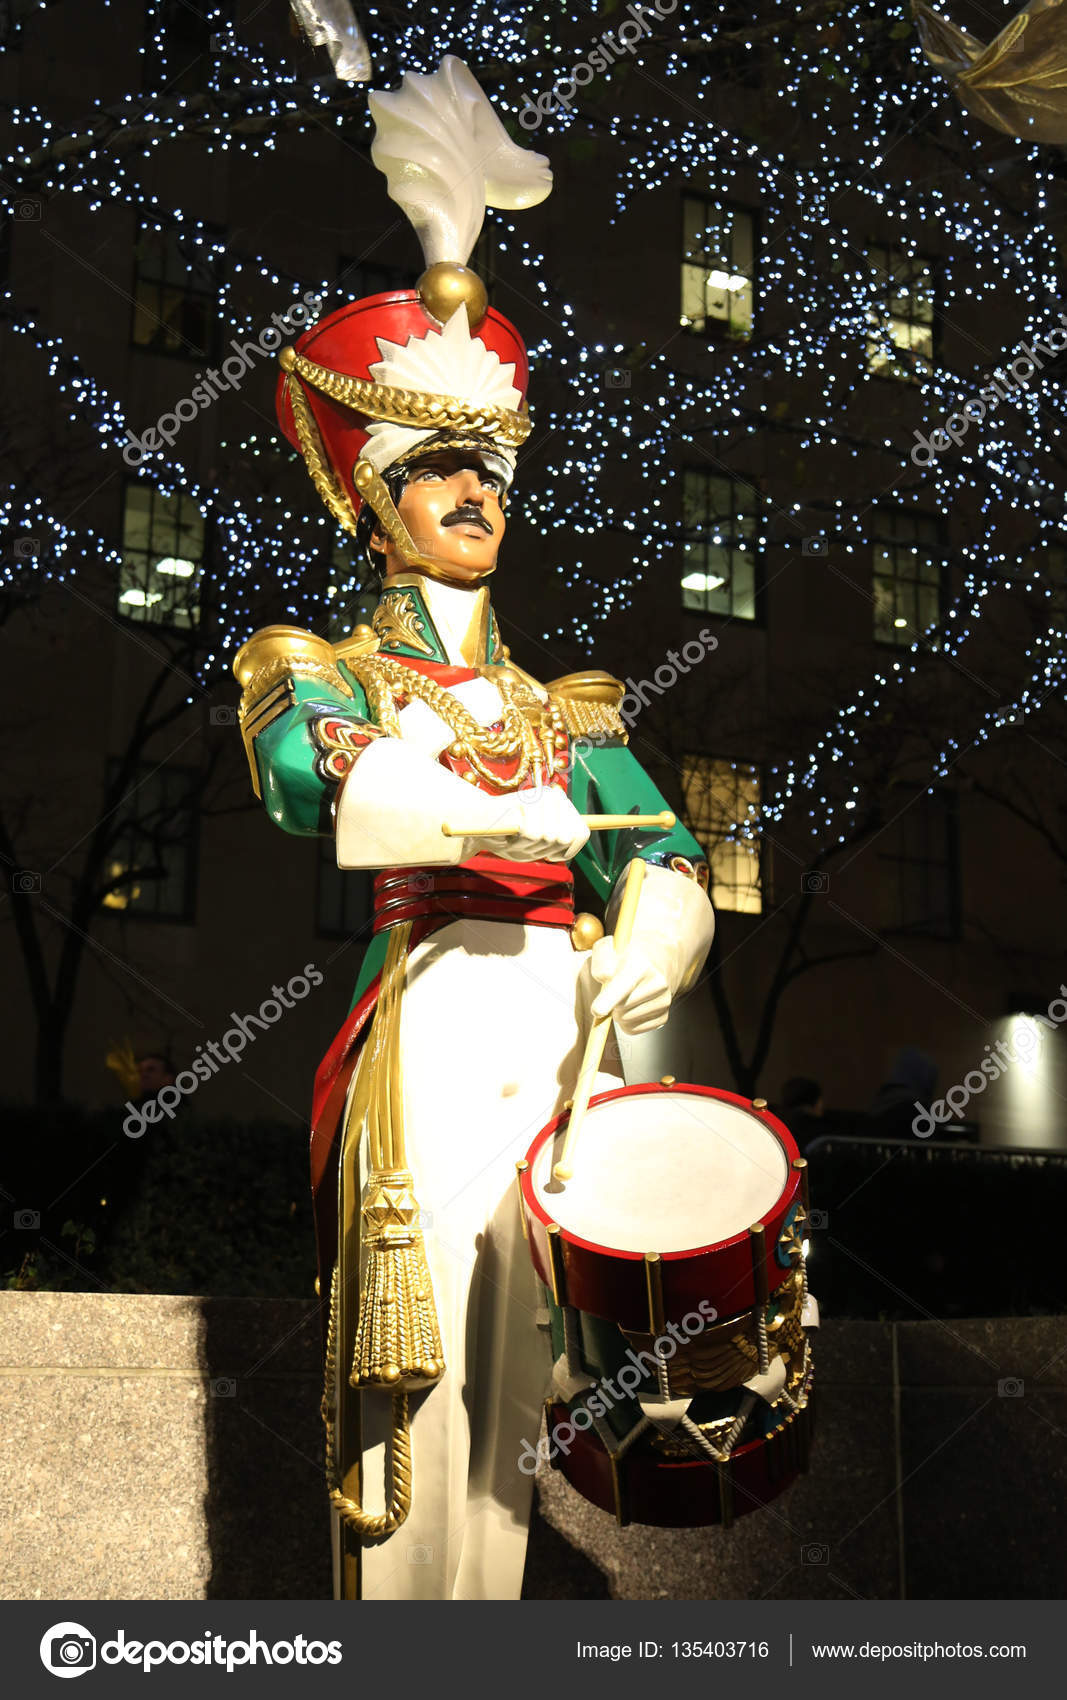 wooden soldier drummer christmas decoration at the rockefeller center in midtown manhattan stock photo - Christmas Decorations Wooden Soldiers